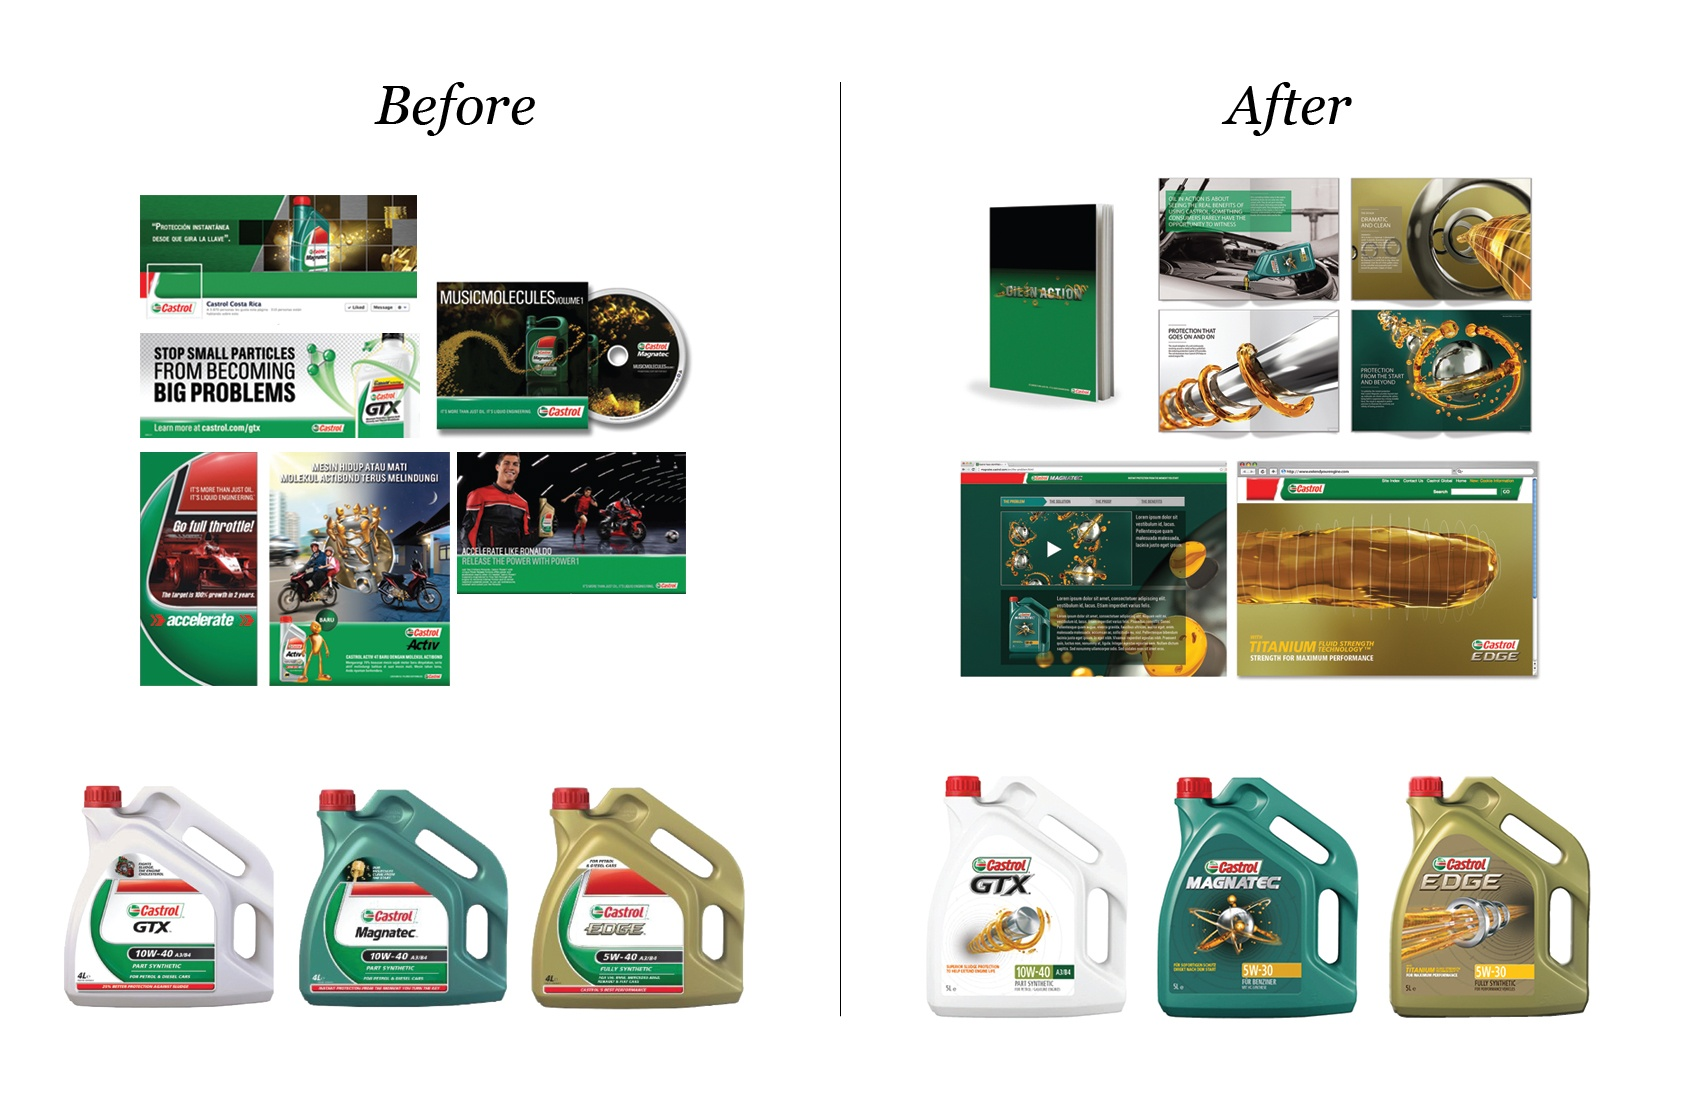 WMH-CASTROL-RANGE-BEFORE-AFTER-WEB image